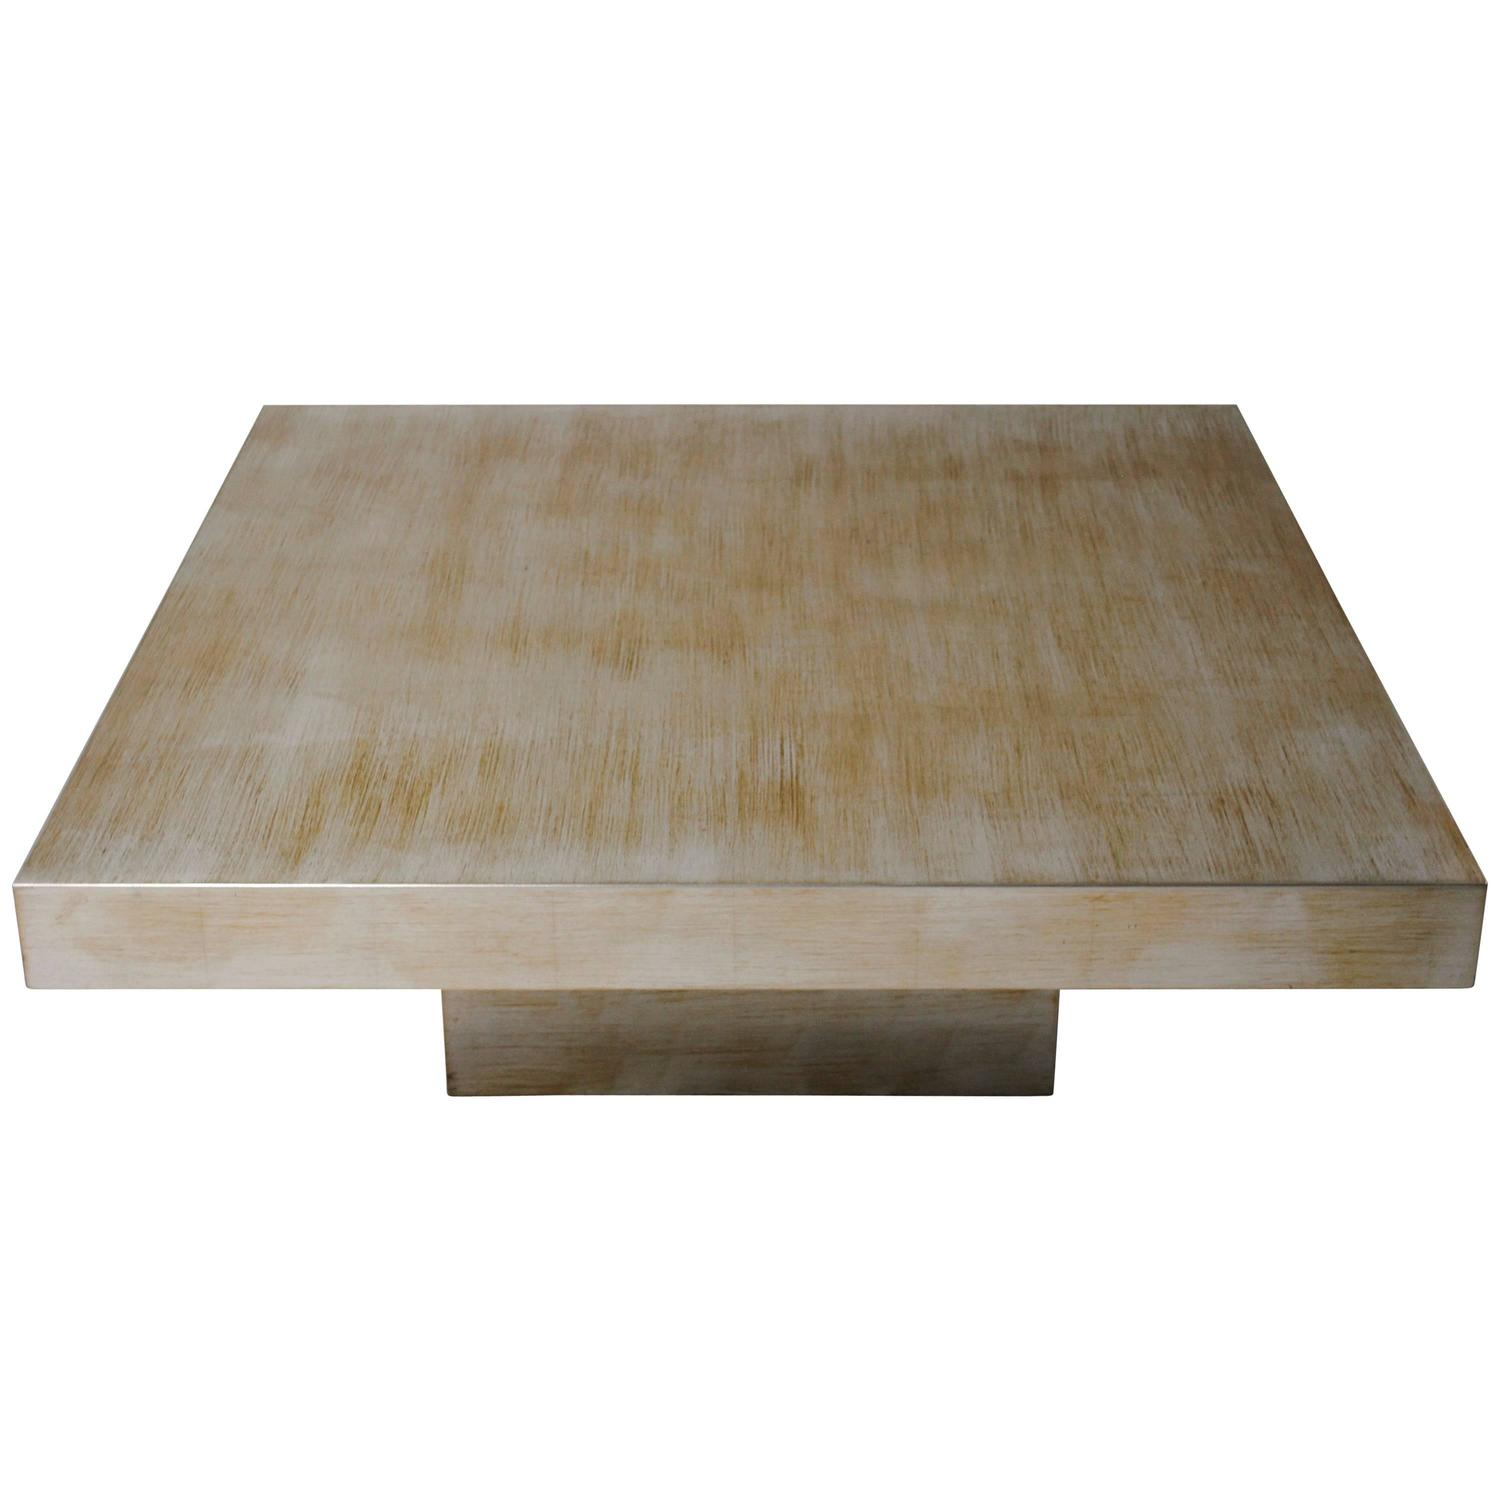 Scale Silver Leaf and Gold Coffee Table by Cyrus Furniture